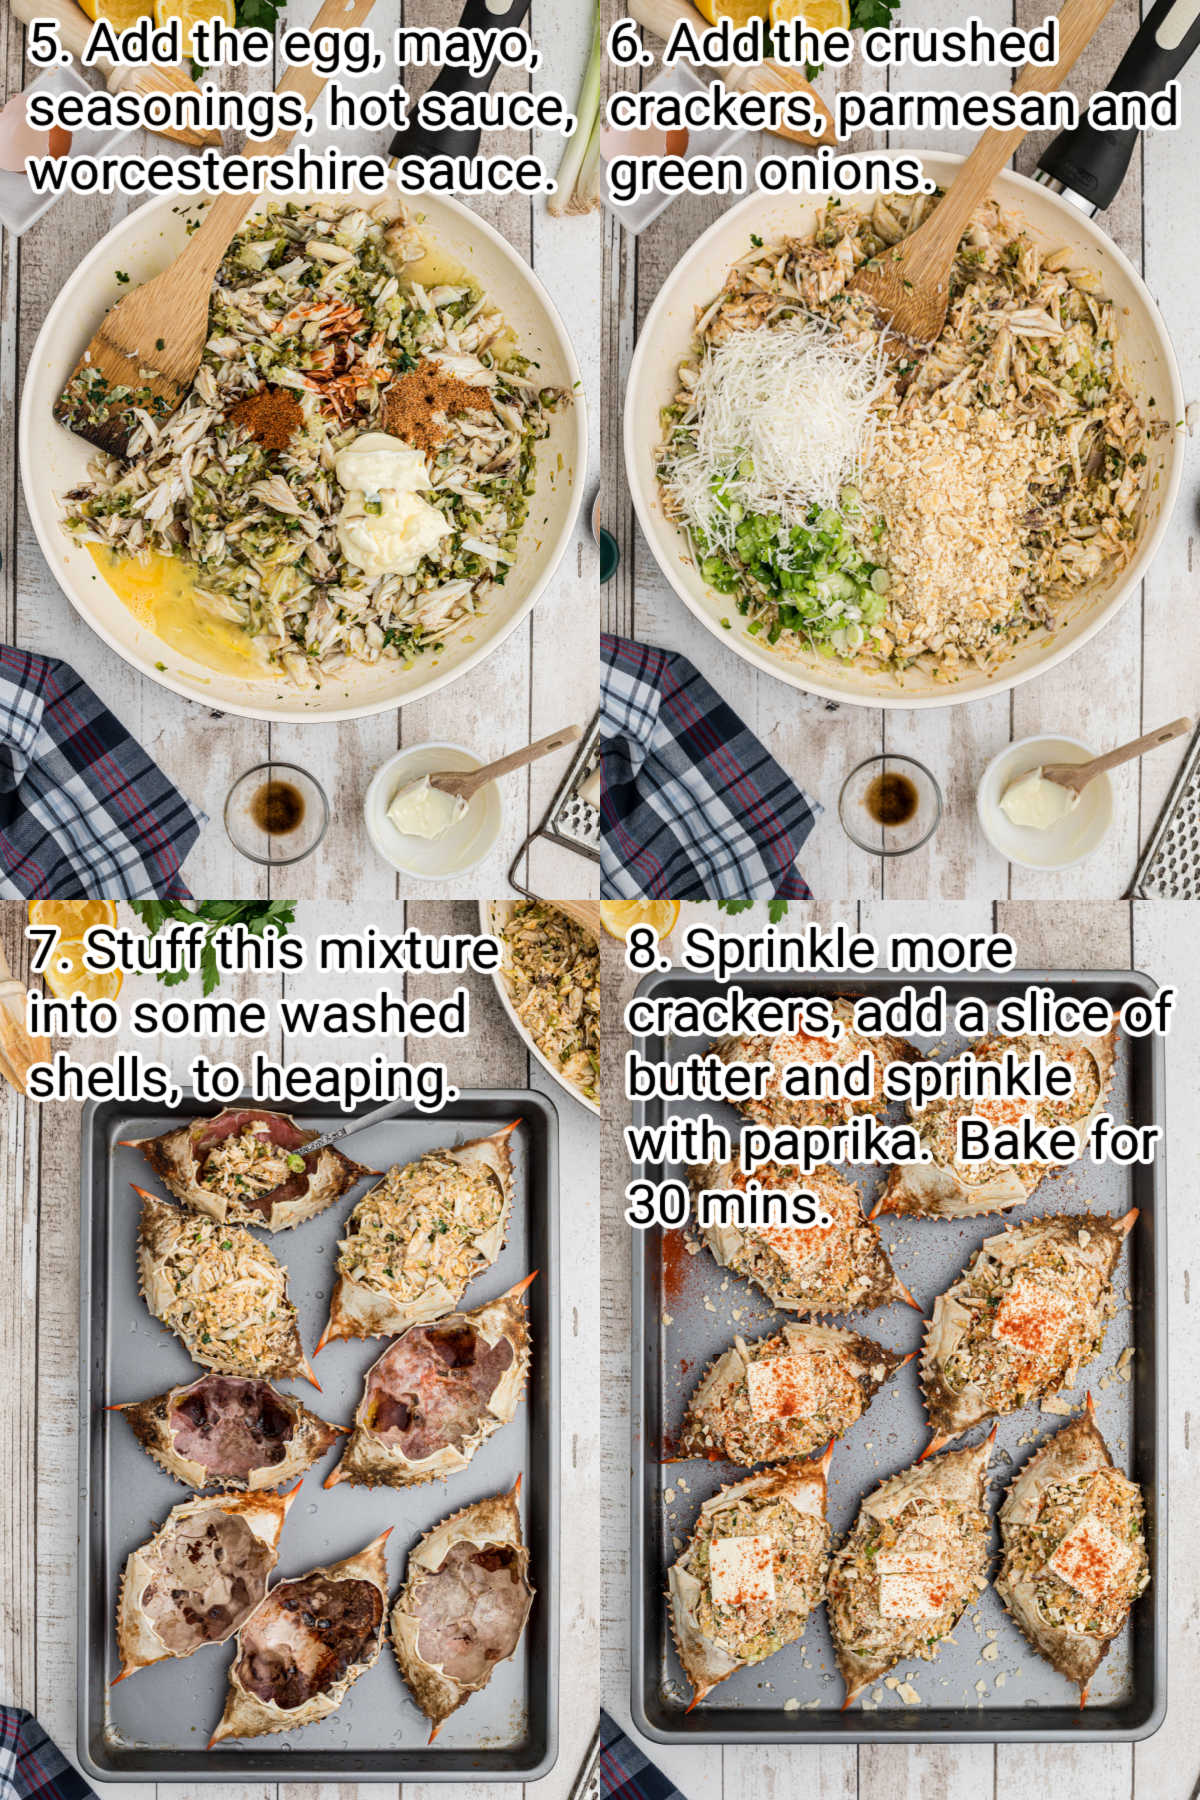 4 images showing the steps how to make a stuffed crab